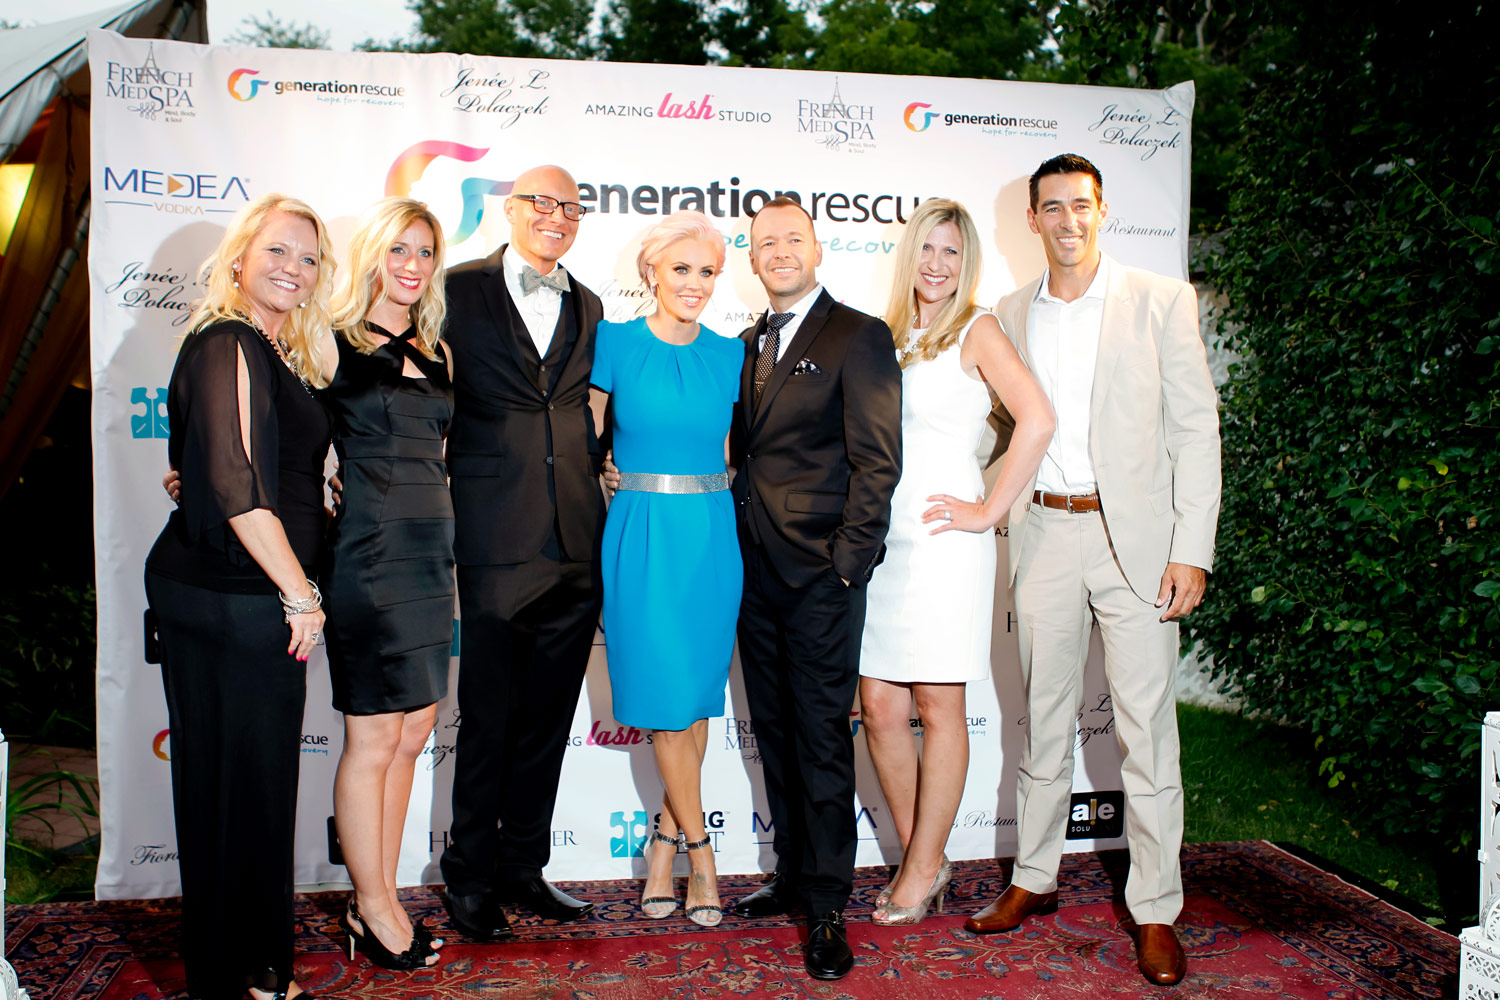 event-photographer-madison-wi-autism-ruthie-hauge-generation-rescue-night-of-hope-oscar-swan-jenny-mccarthy-donnie-wahlberg-03.jpg